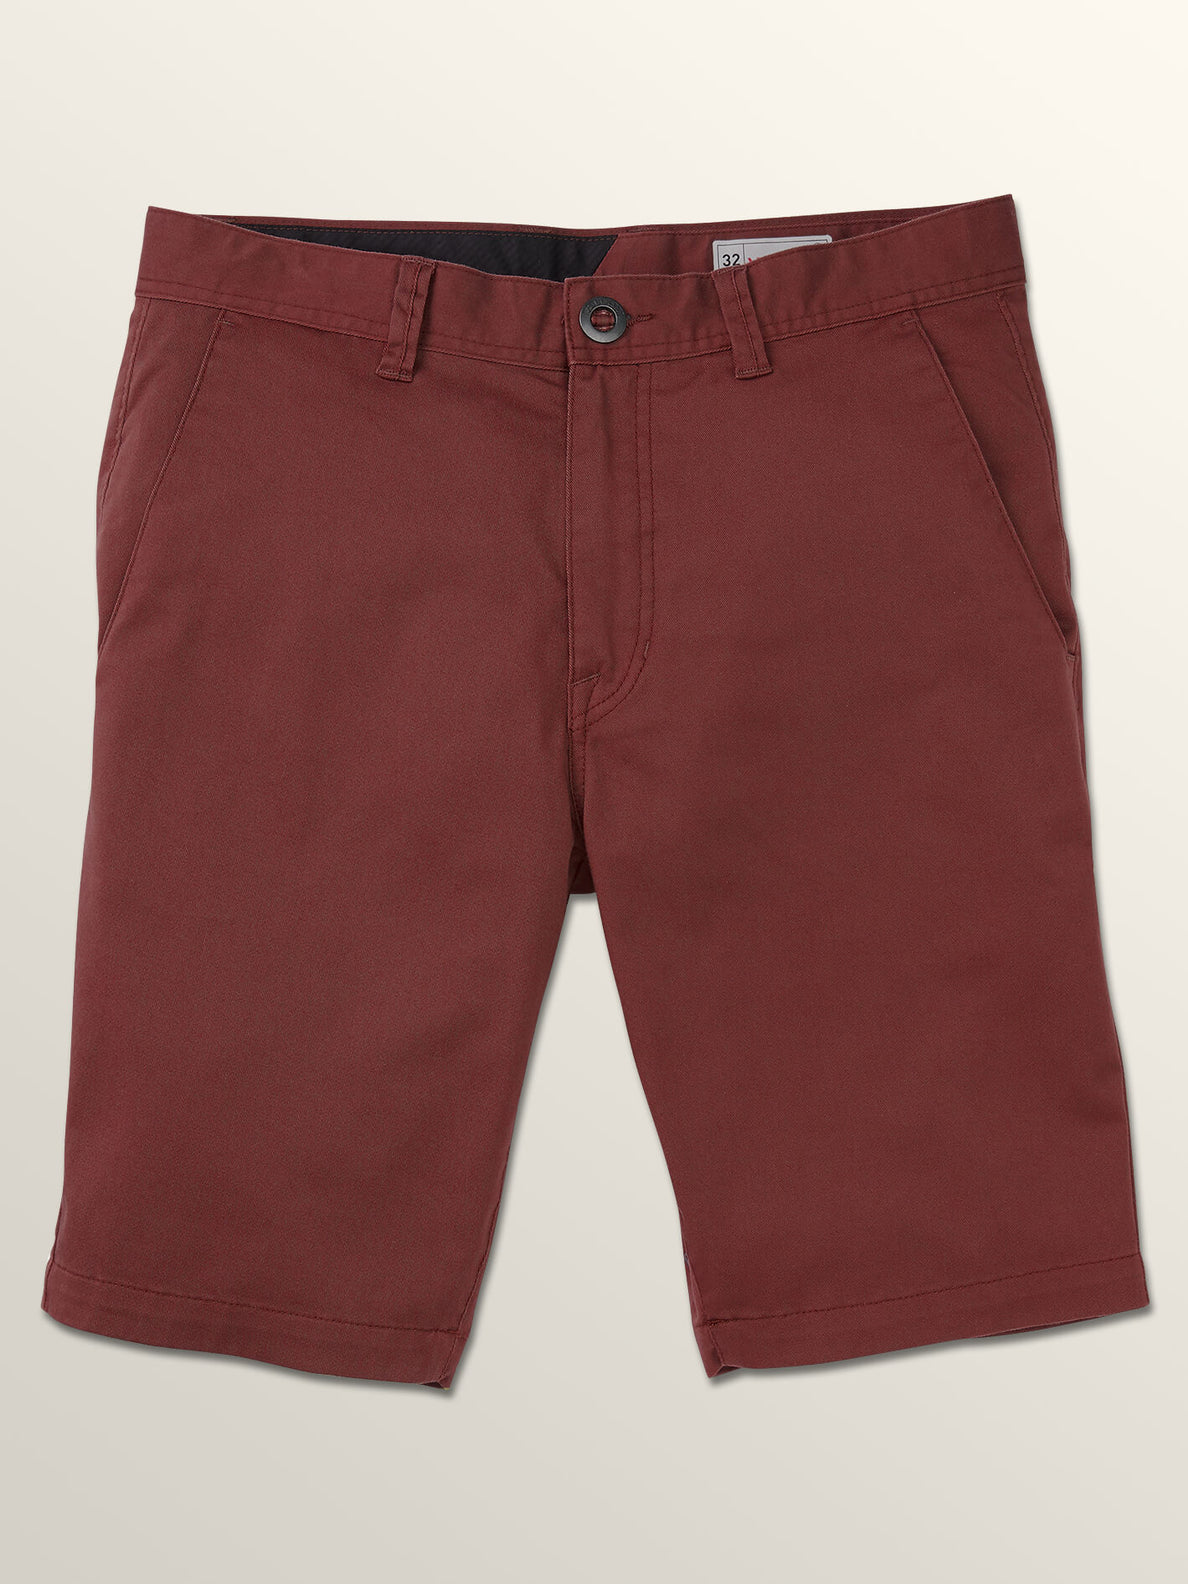 Frickin Modern Stretch Shorts In Bordeaux Brown, Third Alternate View